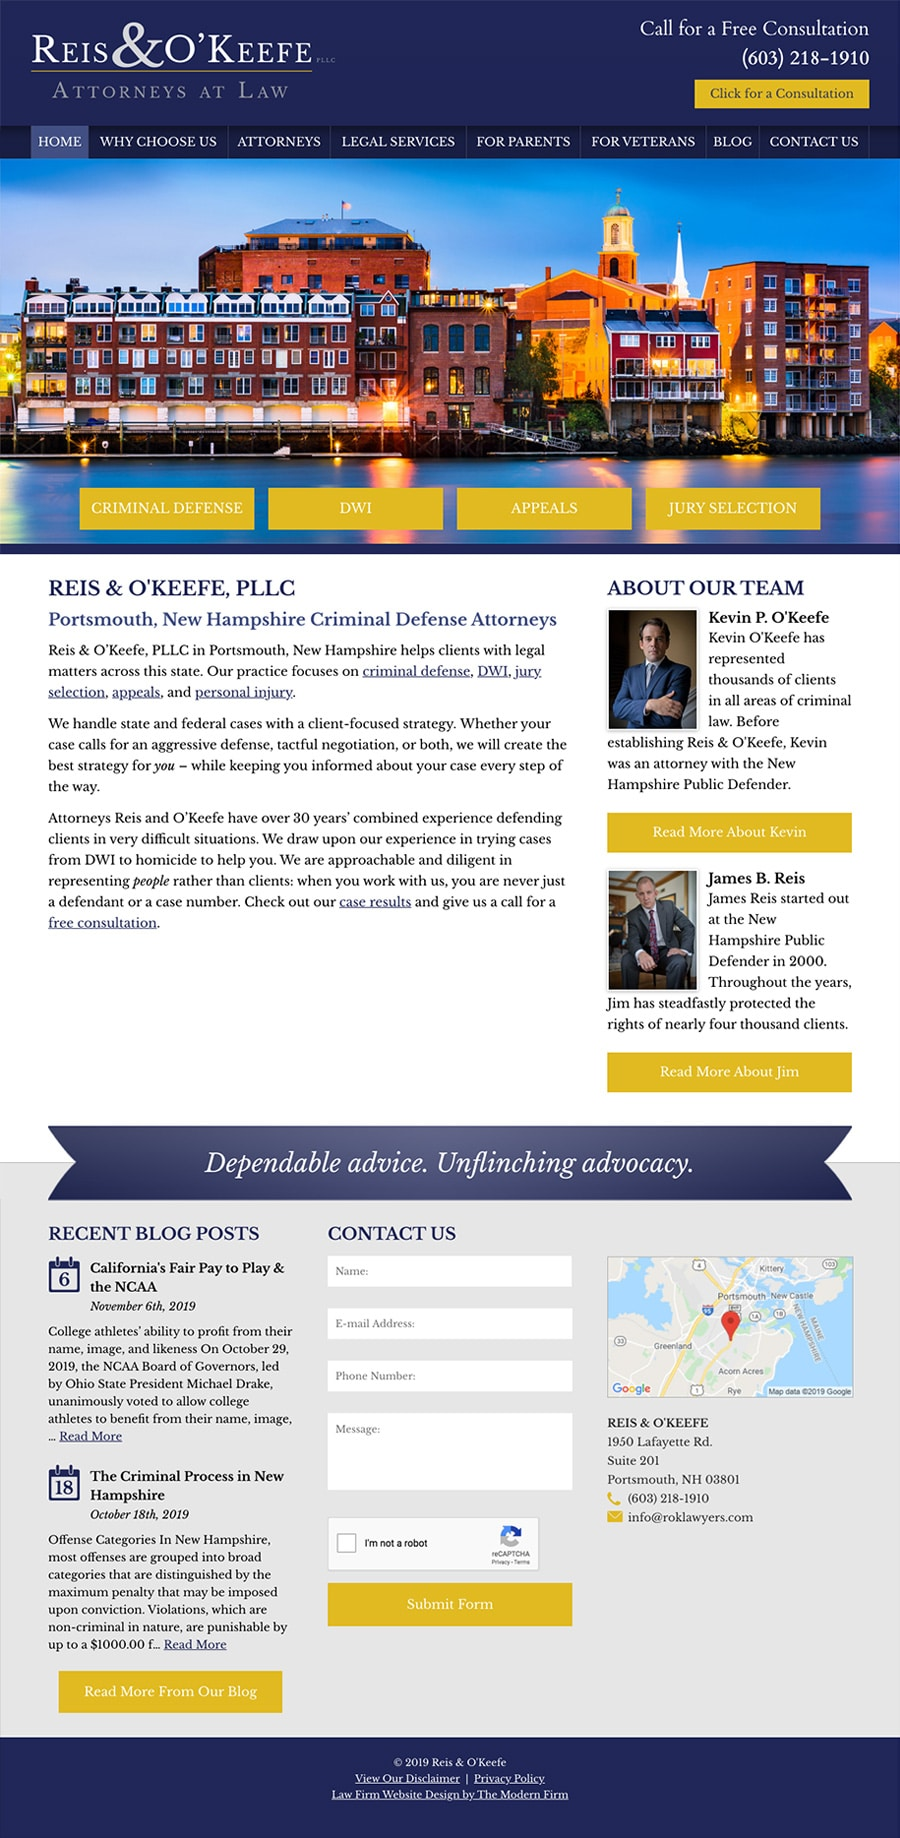 Law Firm Website Design for Reis & O'Keefe